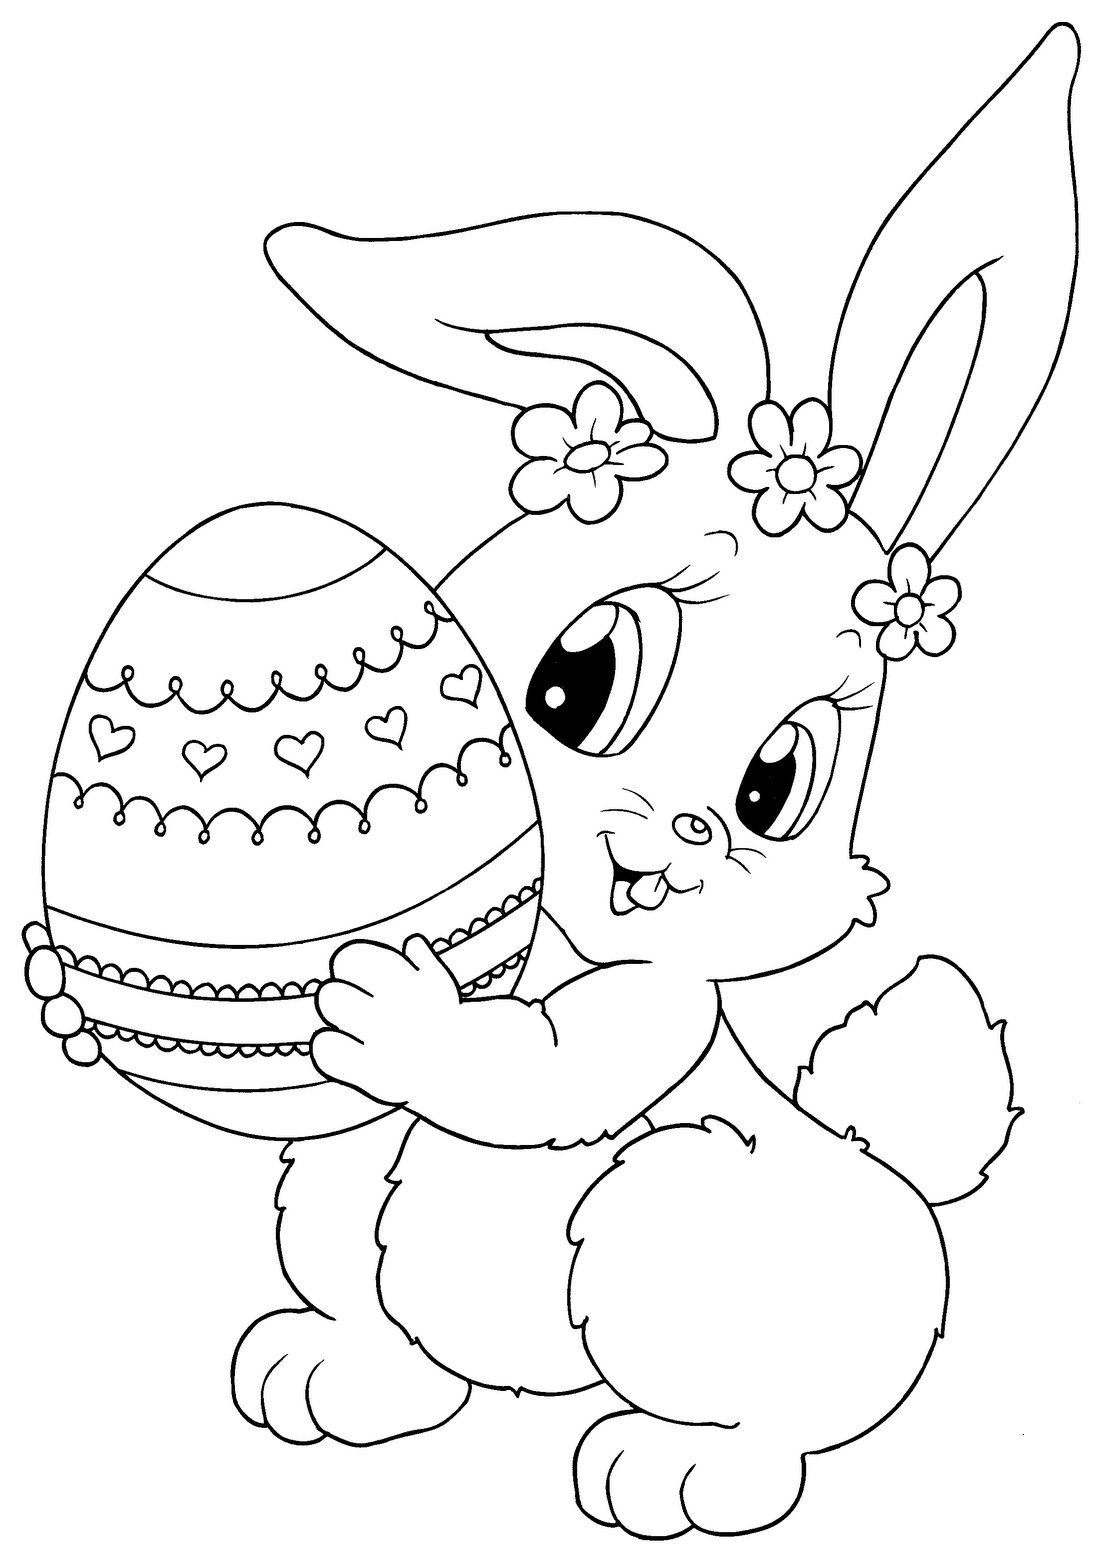 Top 15 Free Printable Easter Bunny Coloring Pages Line to Print Of Easter Egg Designs Coloring Pages to Print